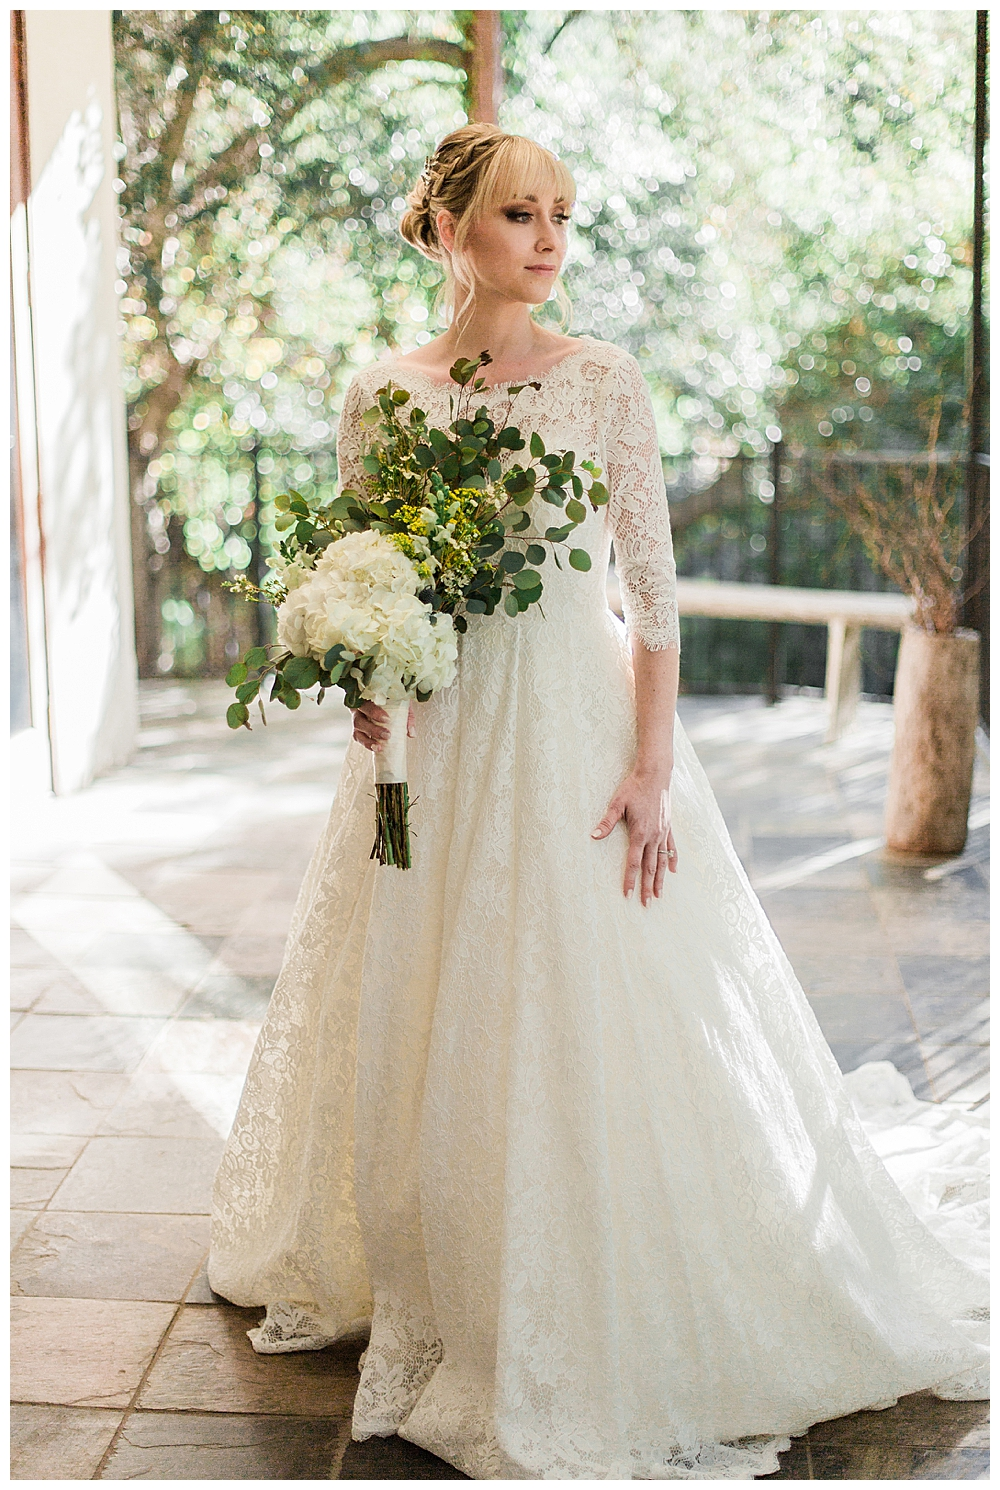 maggie-sottero-wedding-dress